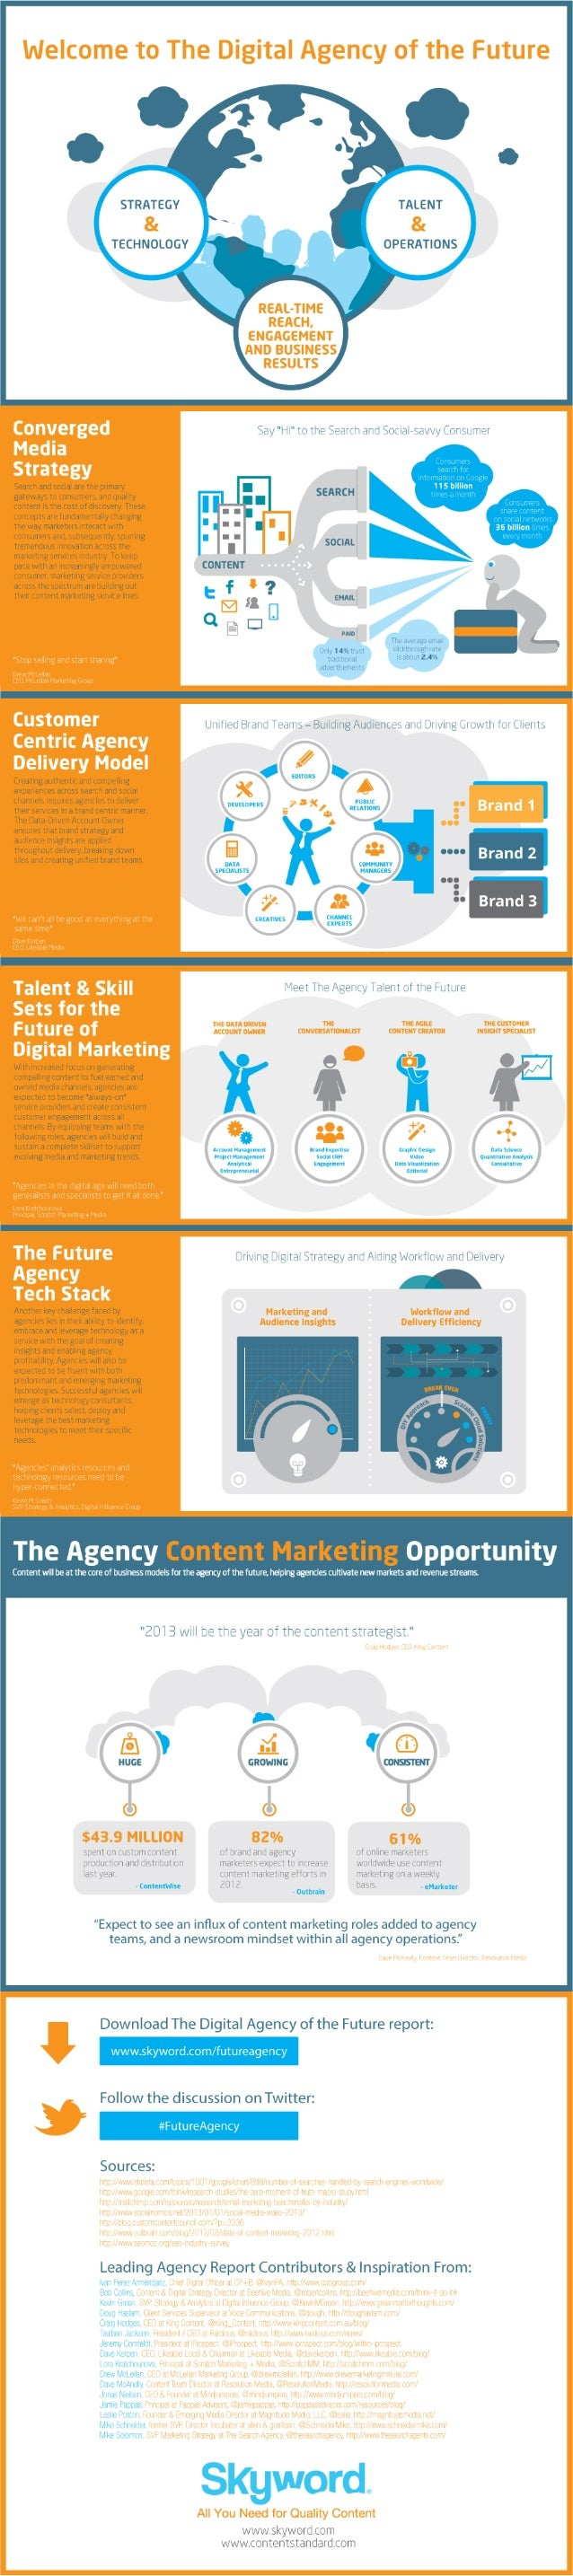 Skyword Digital Agency of The Future Complete Infographic